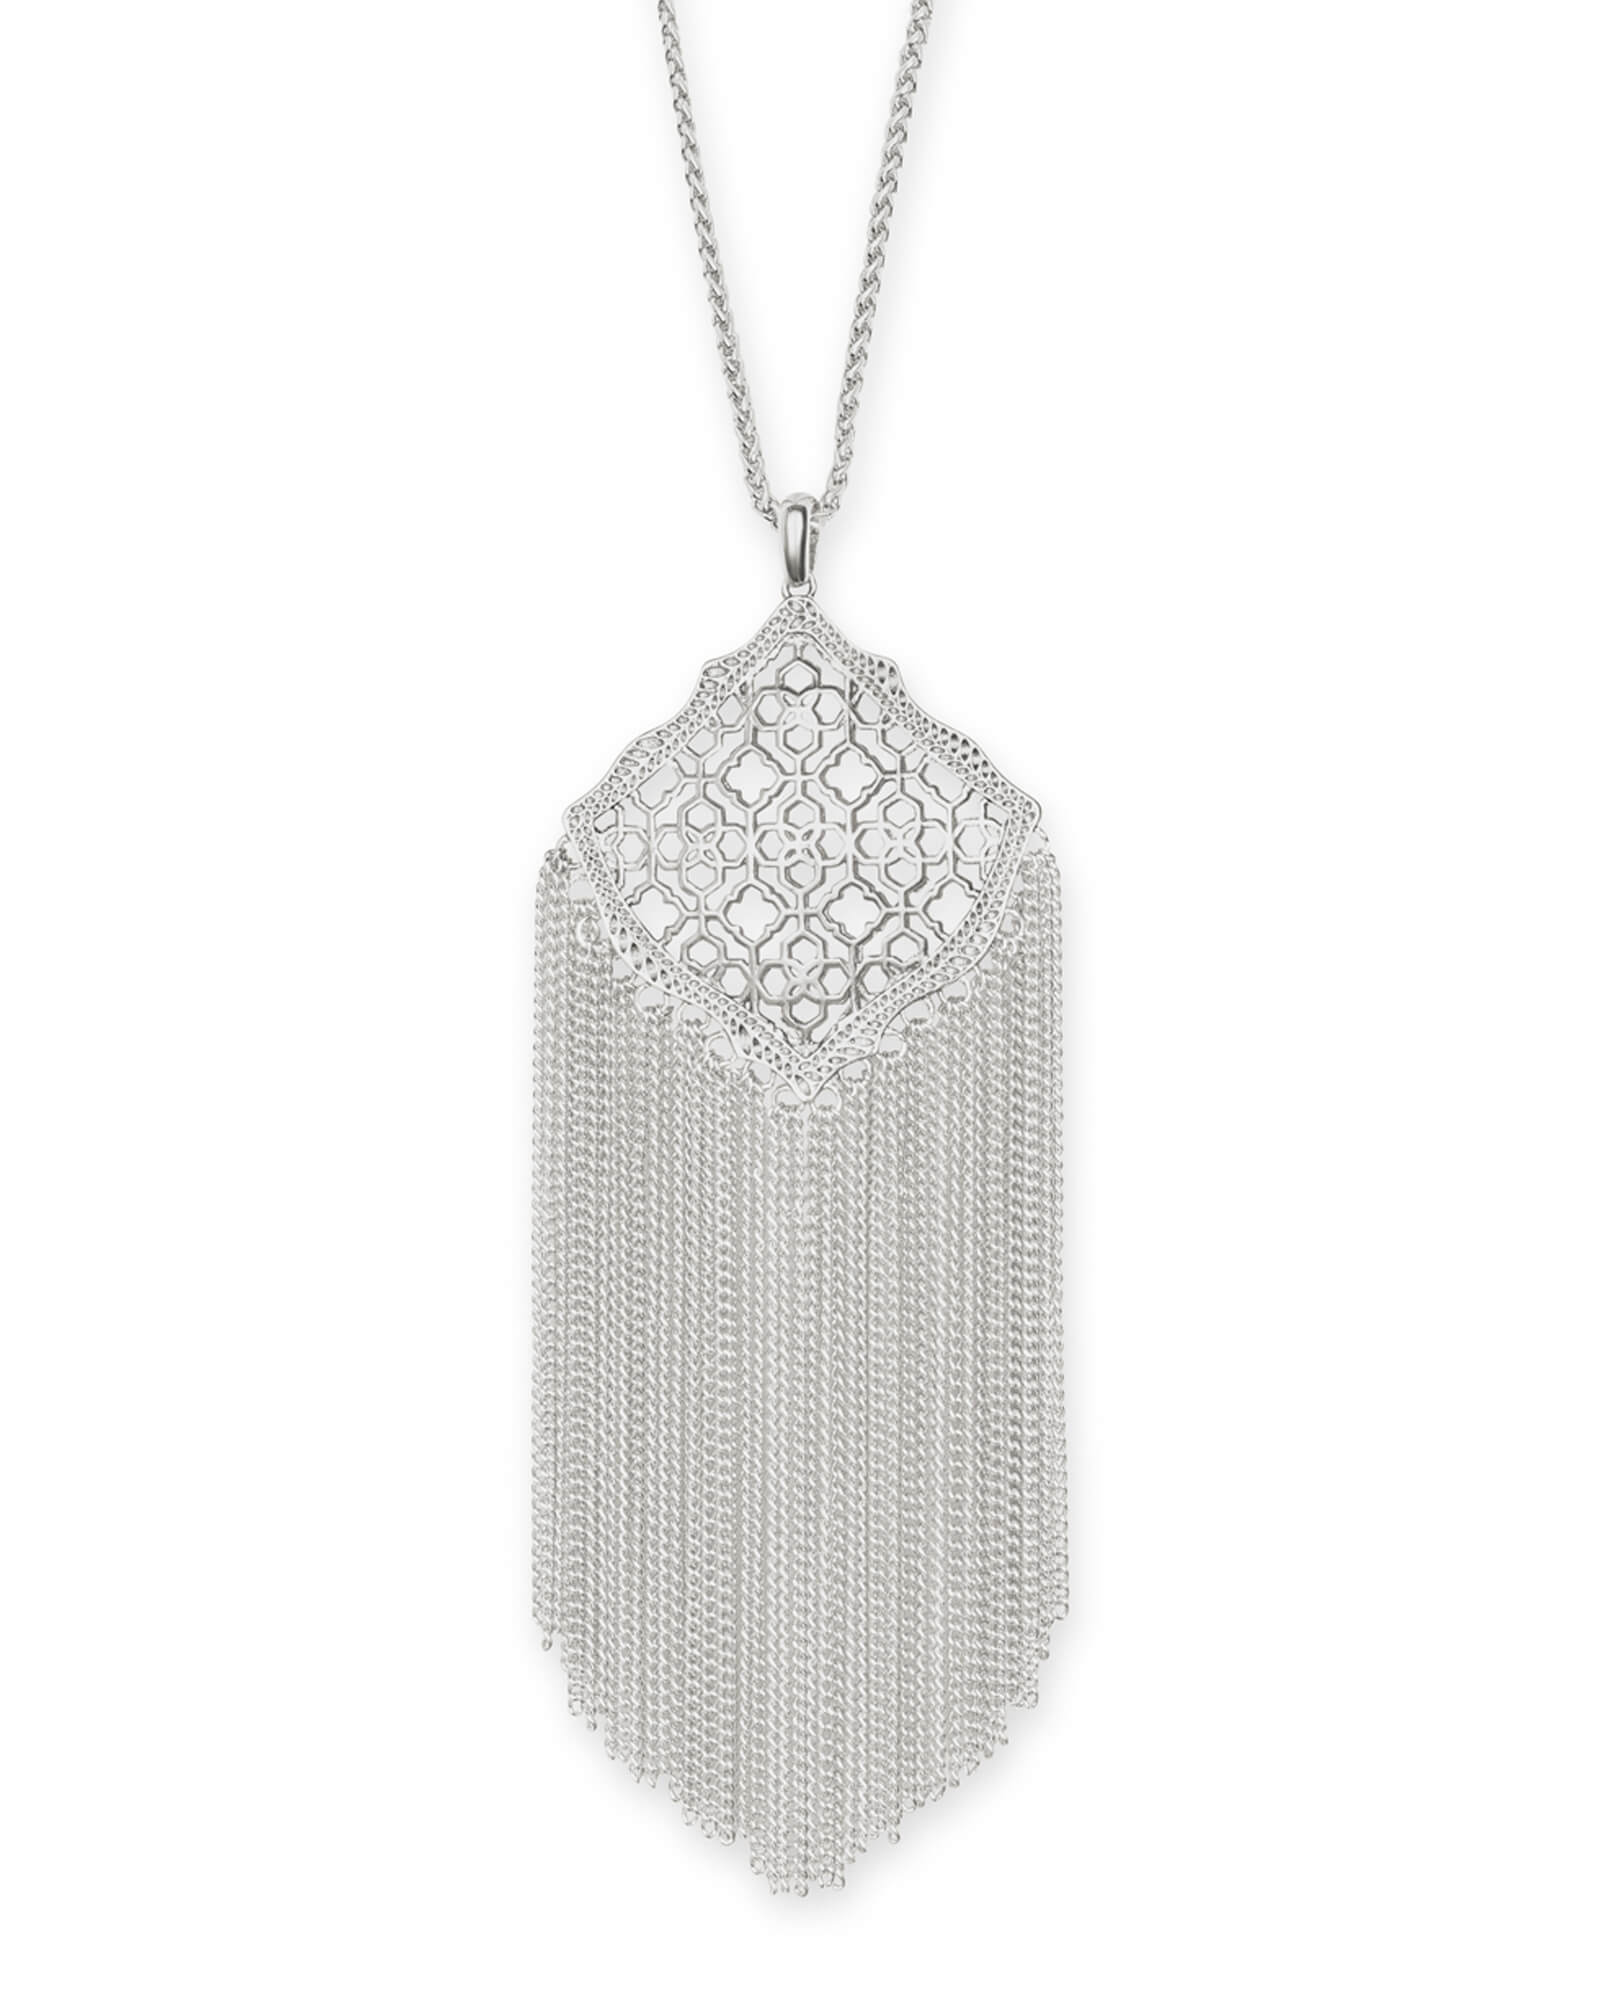 Kingston Silver Long Pendant Necklace in Silver Filigree Mix